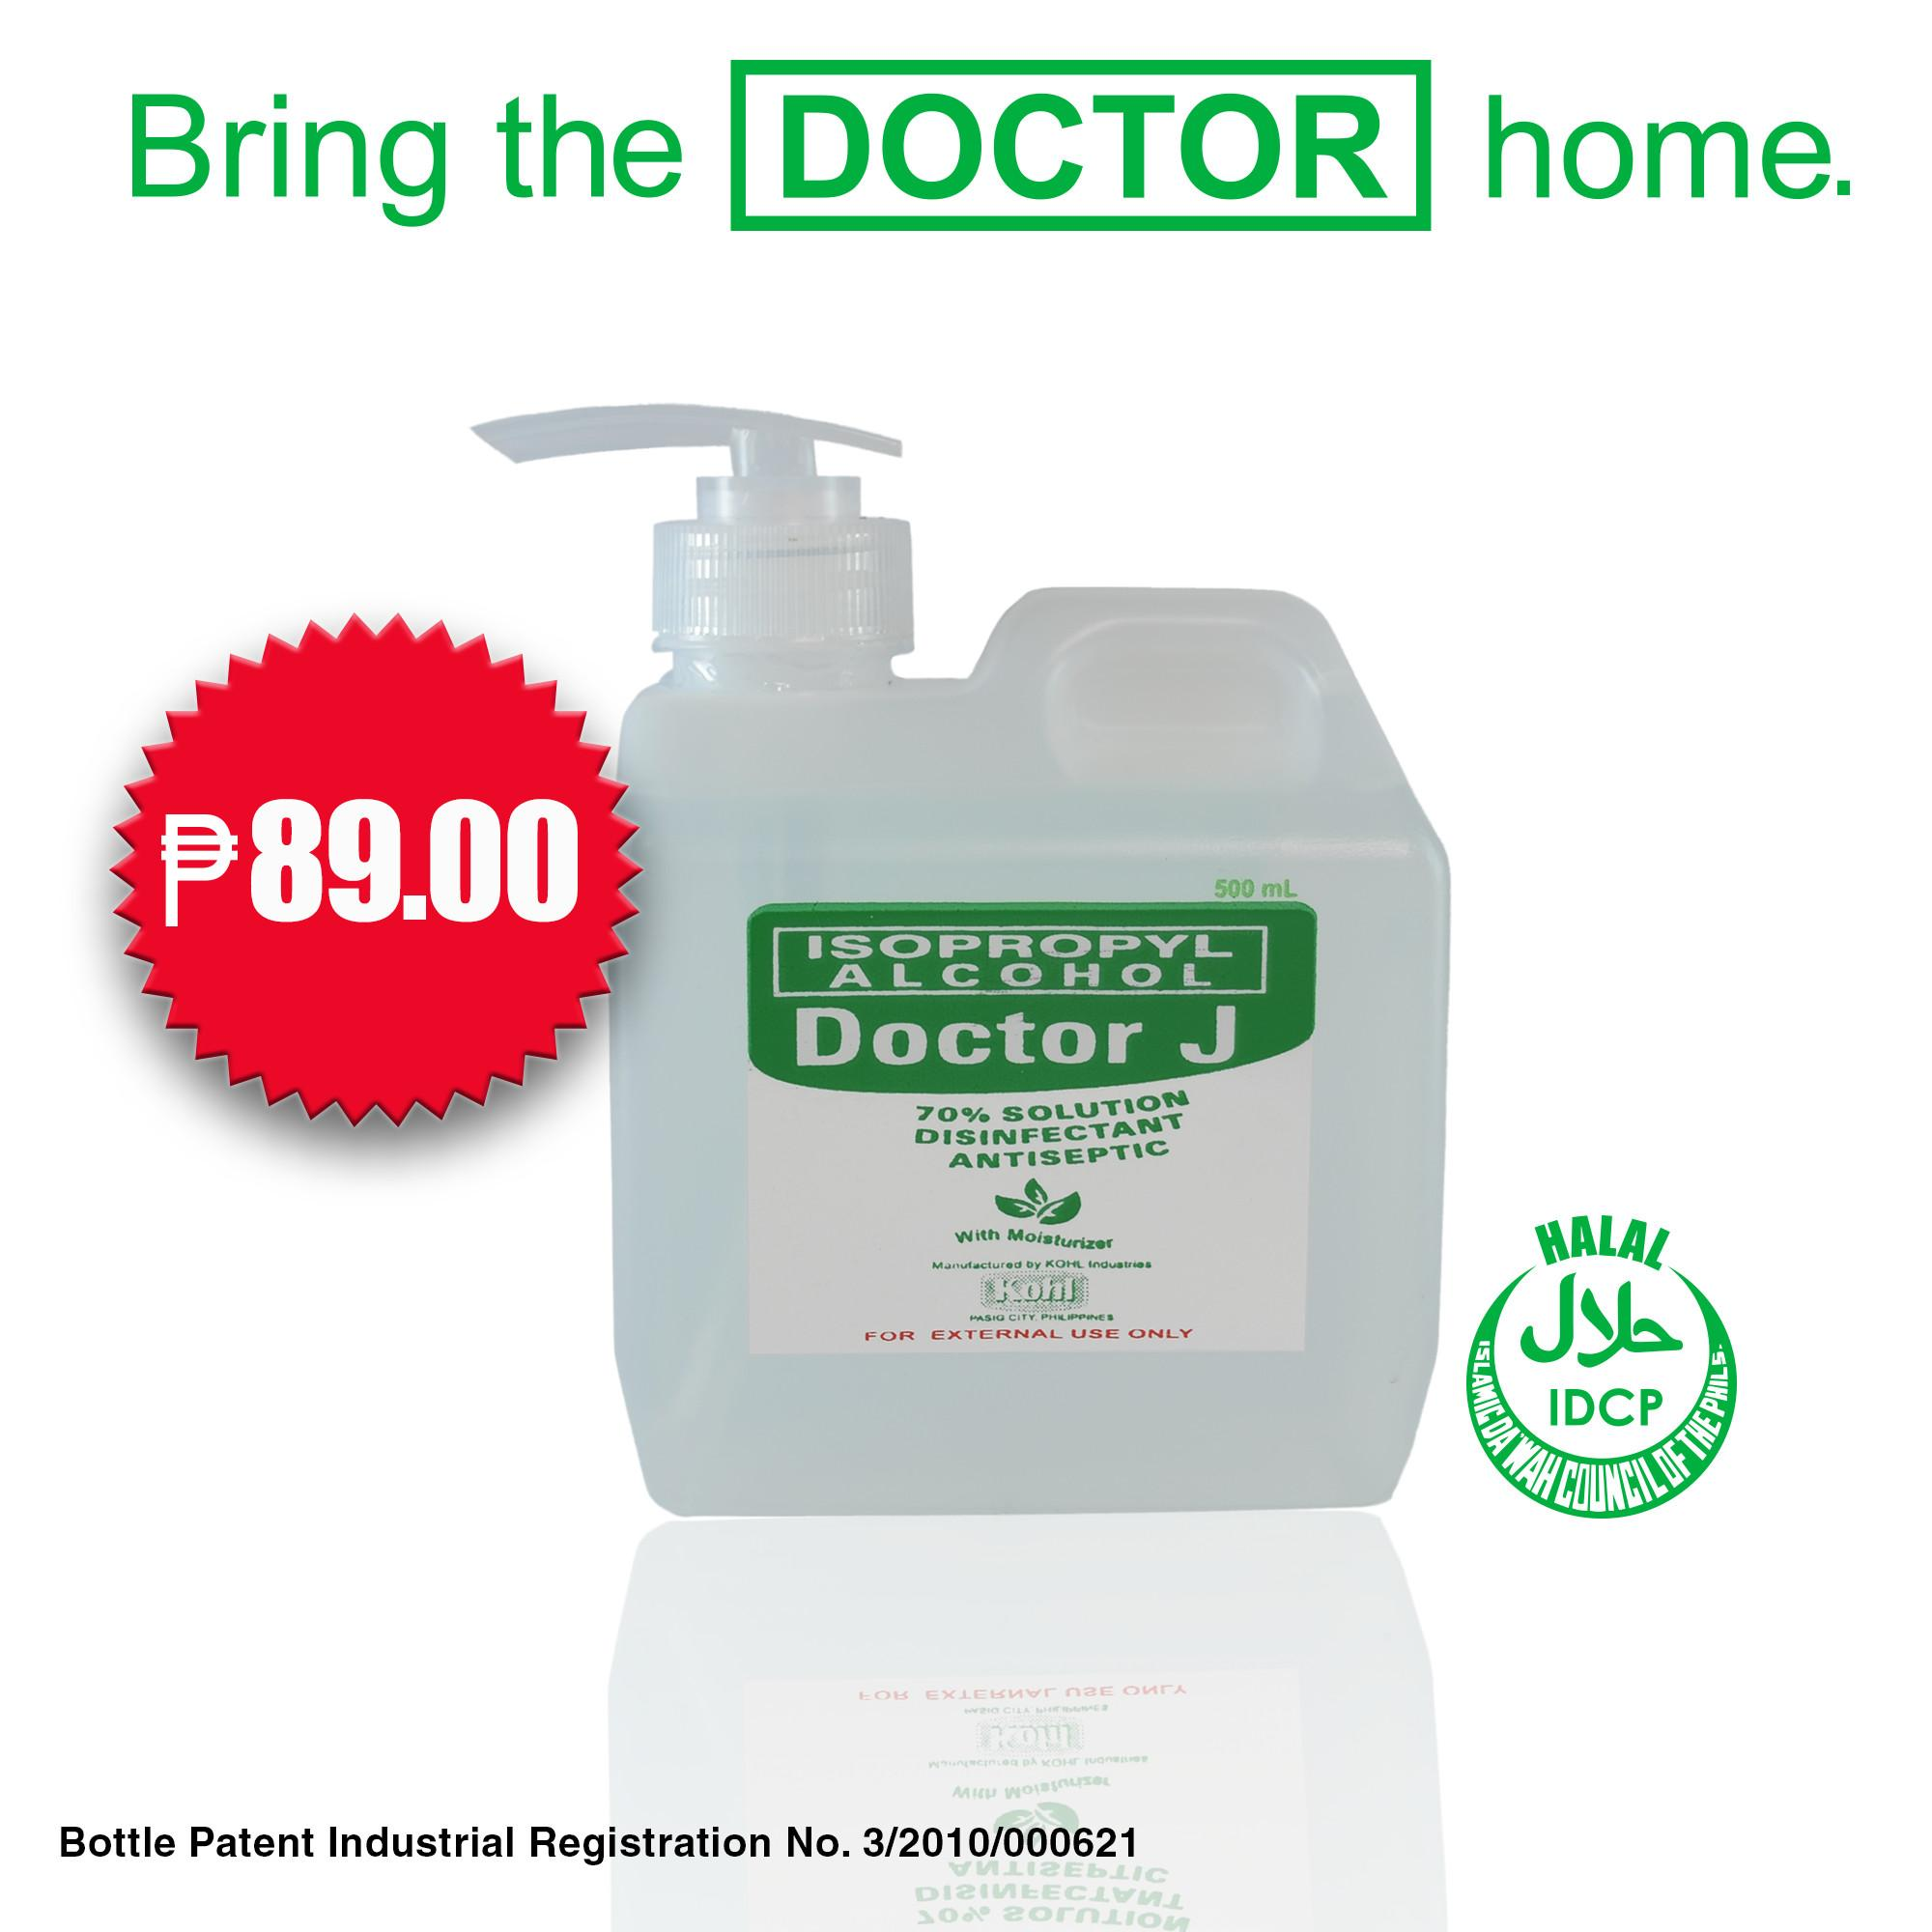 First Aid Kit Brands Supplies On Sale Prices Set Aseptic Gel Alkohol Antiseptik Doctor J 70 Isopropyl Alcohol 500ml